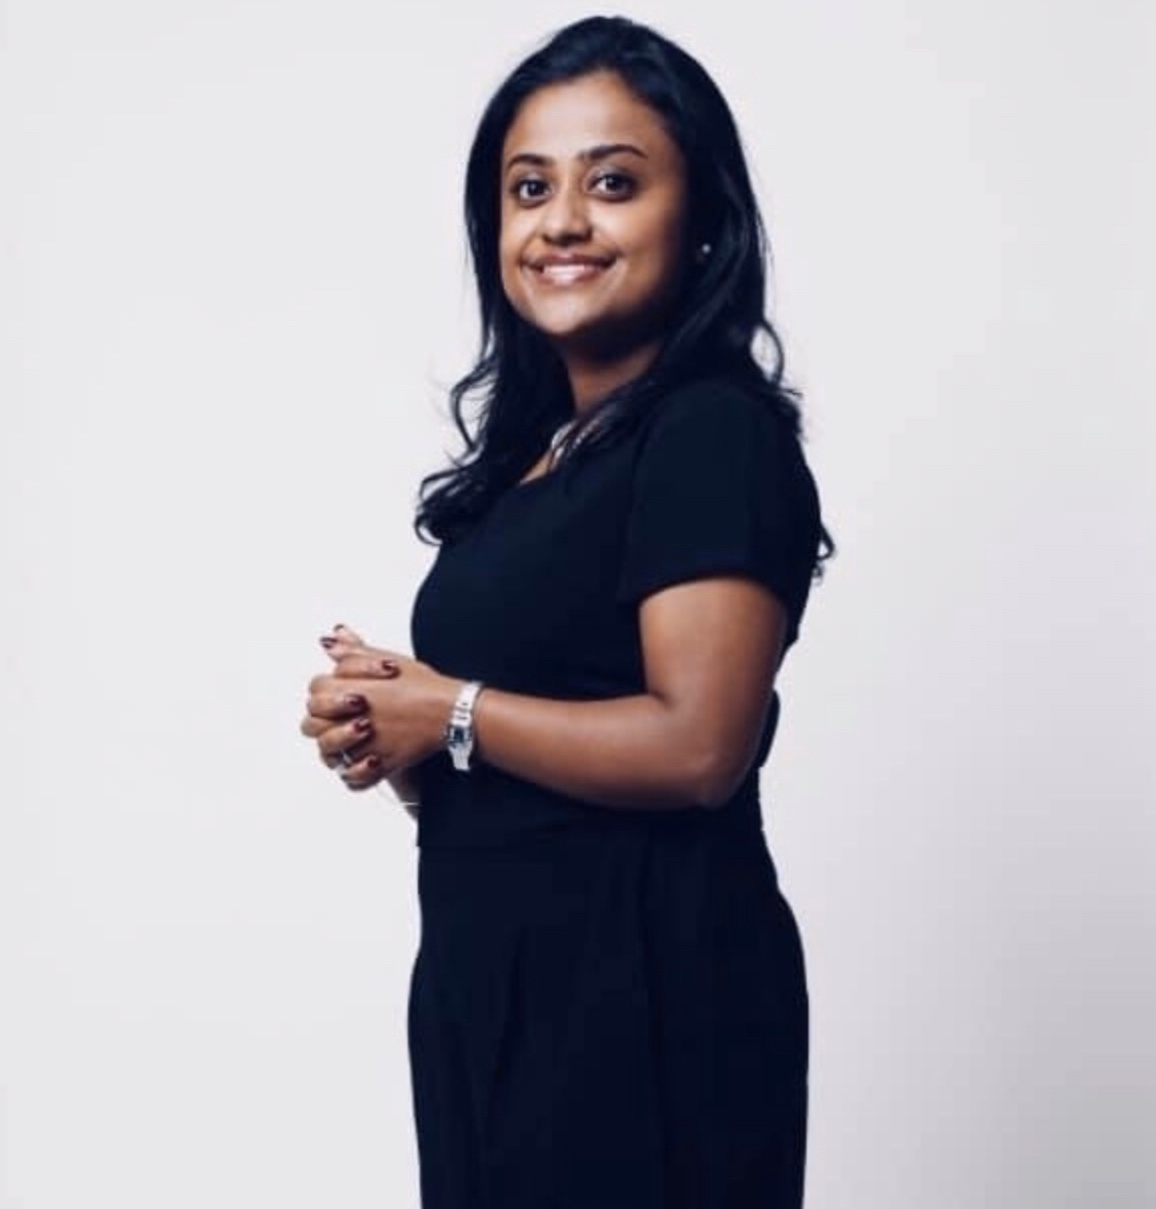 A FIRST GENERATION LAWYER'S JOURNEY TOWARDS SOCIAL ENTREPRENEURSHIP AIMED AT PROMOTING DIVERSITY AND INCLUSION AT WORKPLACE by-Debolina Saha Narayanan Designation: Registered Foreign Lawyer (Senior Associate) Dorsey & Whitney, Hong Kong